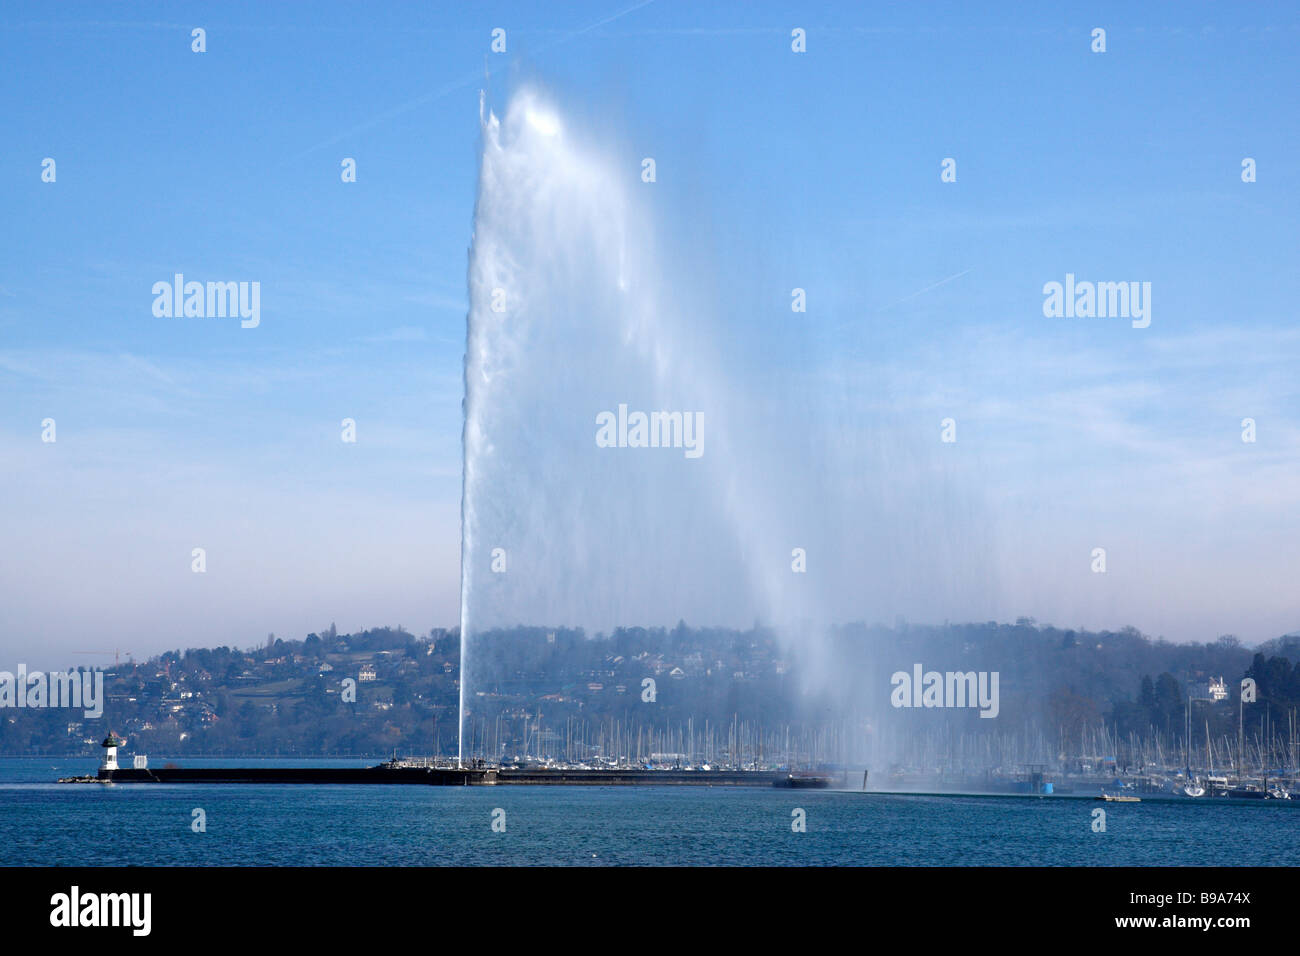 jet d'eau or water jet the cities famous landmark viewed from the promenade du lac geneva switzerland - Stock Image